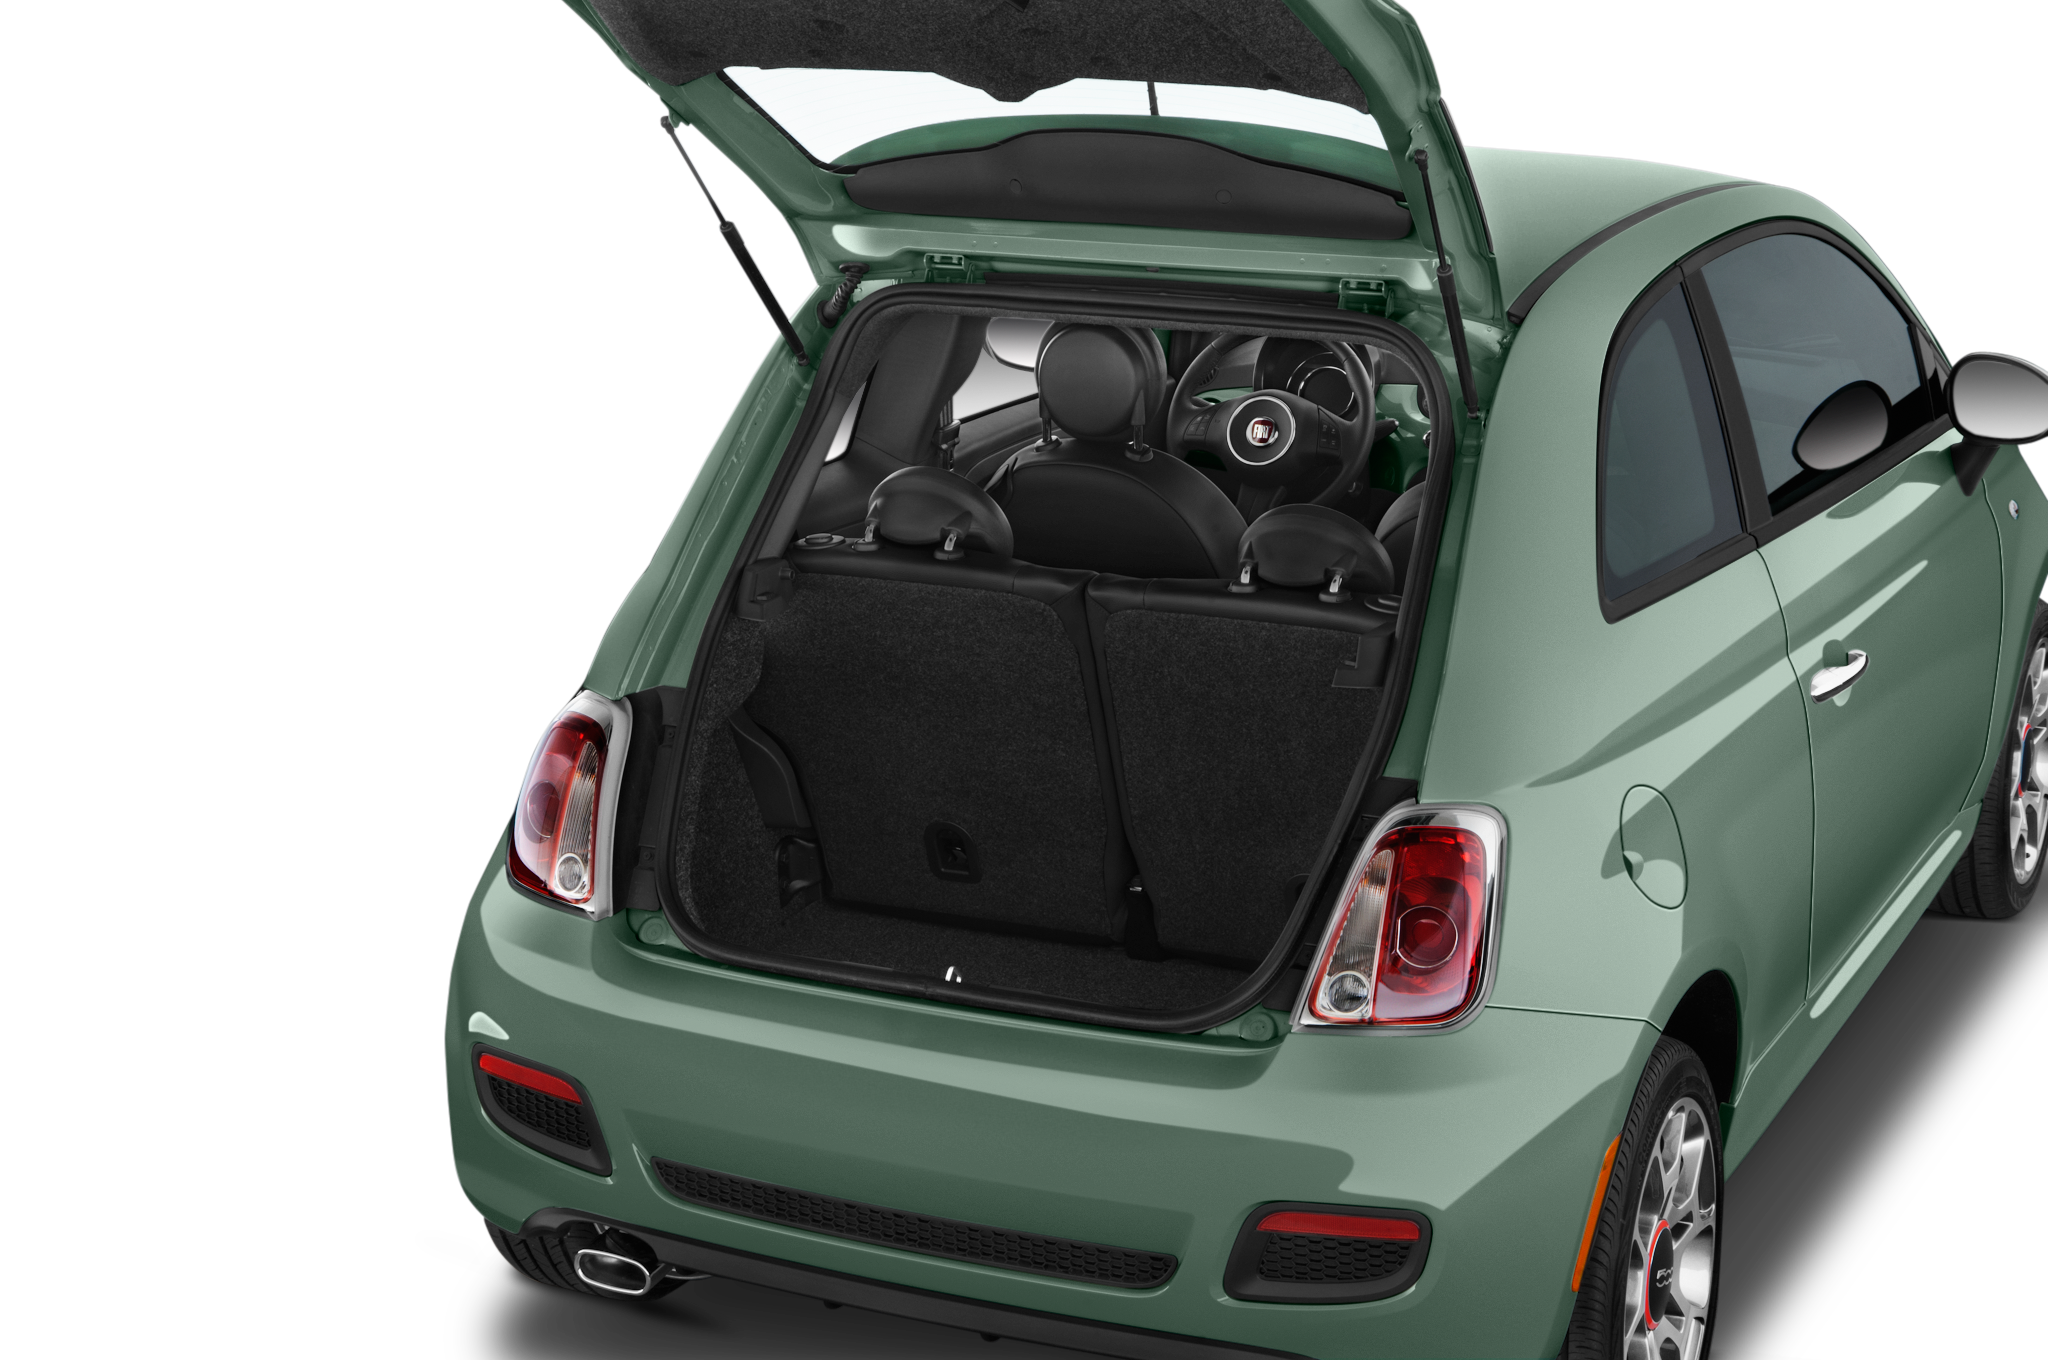 Fiat 500 Abarth Trunk 2015 Fiat 500 A...